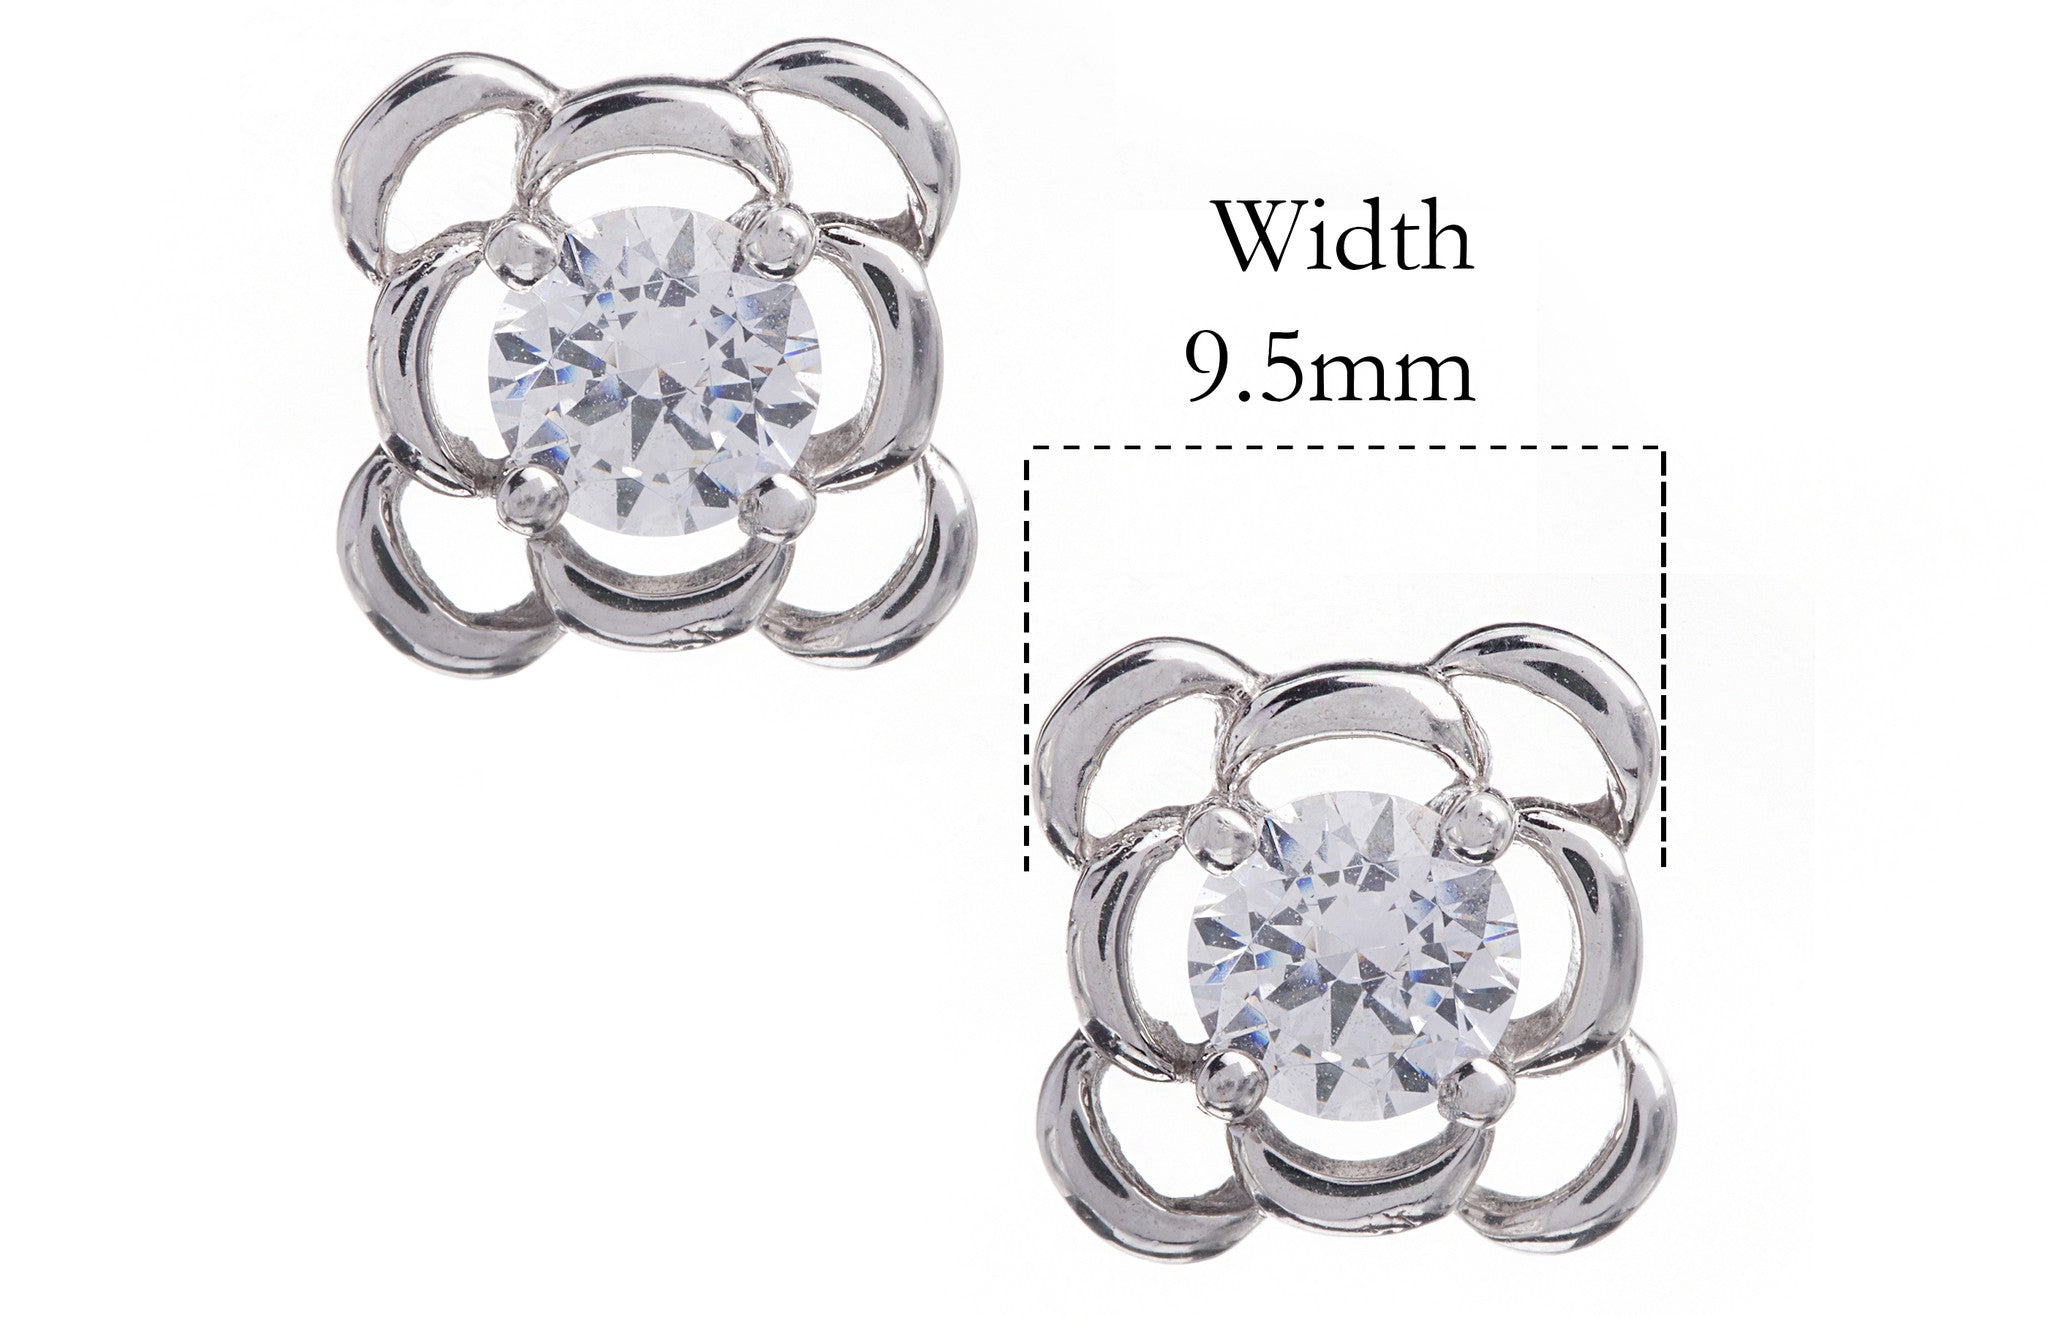 18ct White Gold Earrings set with Cubic Zirconia stones, Minar Jewellers - 3